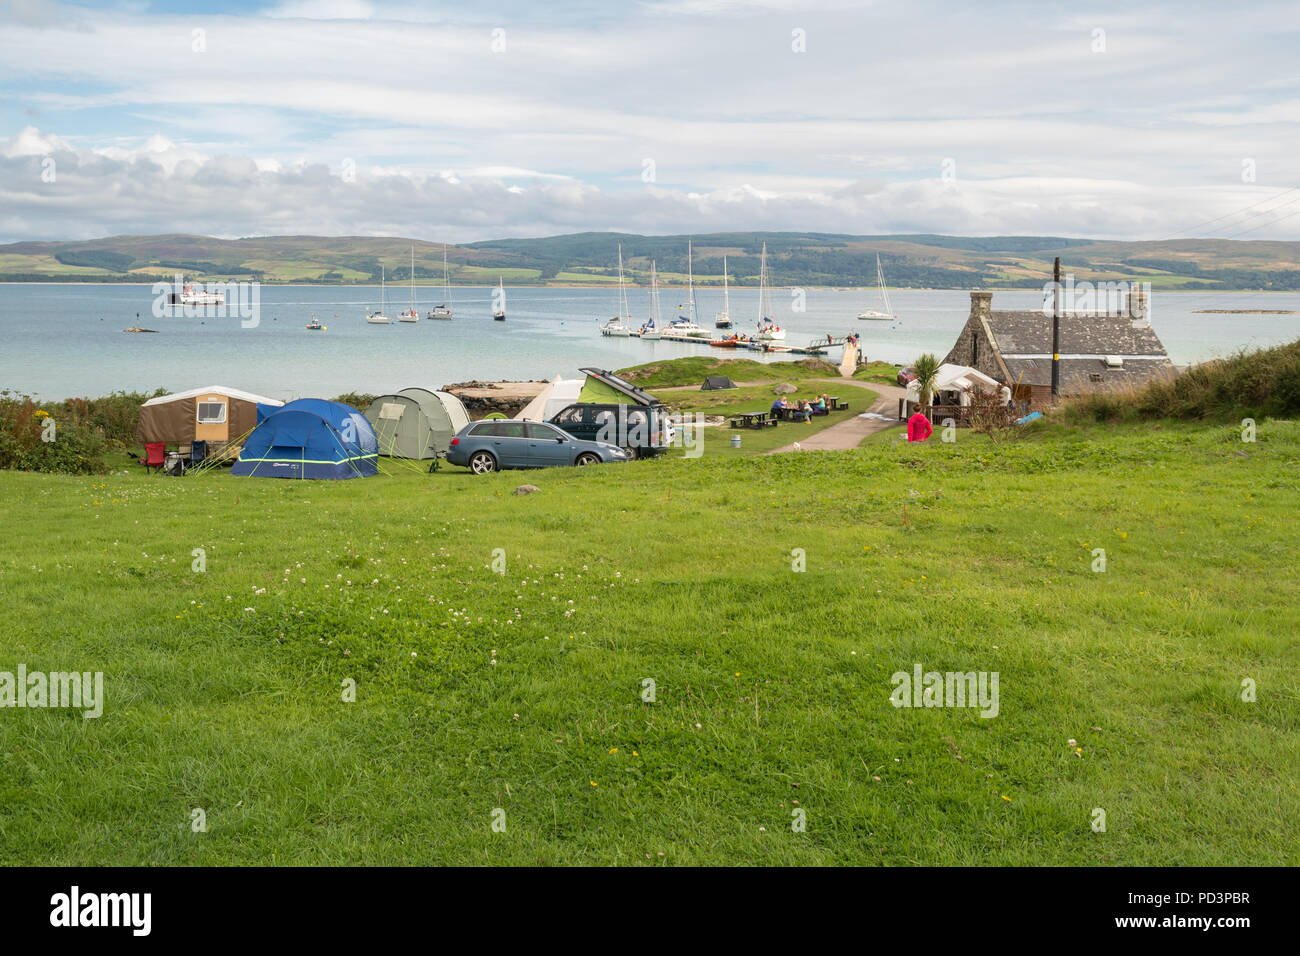 Gigha Moorings, pontoon, campsite and The Boathouse at Ardminish Bay, Isle of Gigha, Scotland, UK - Stock Image